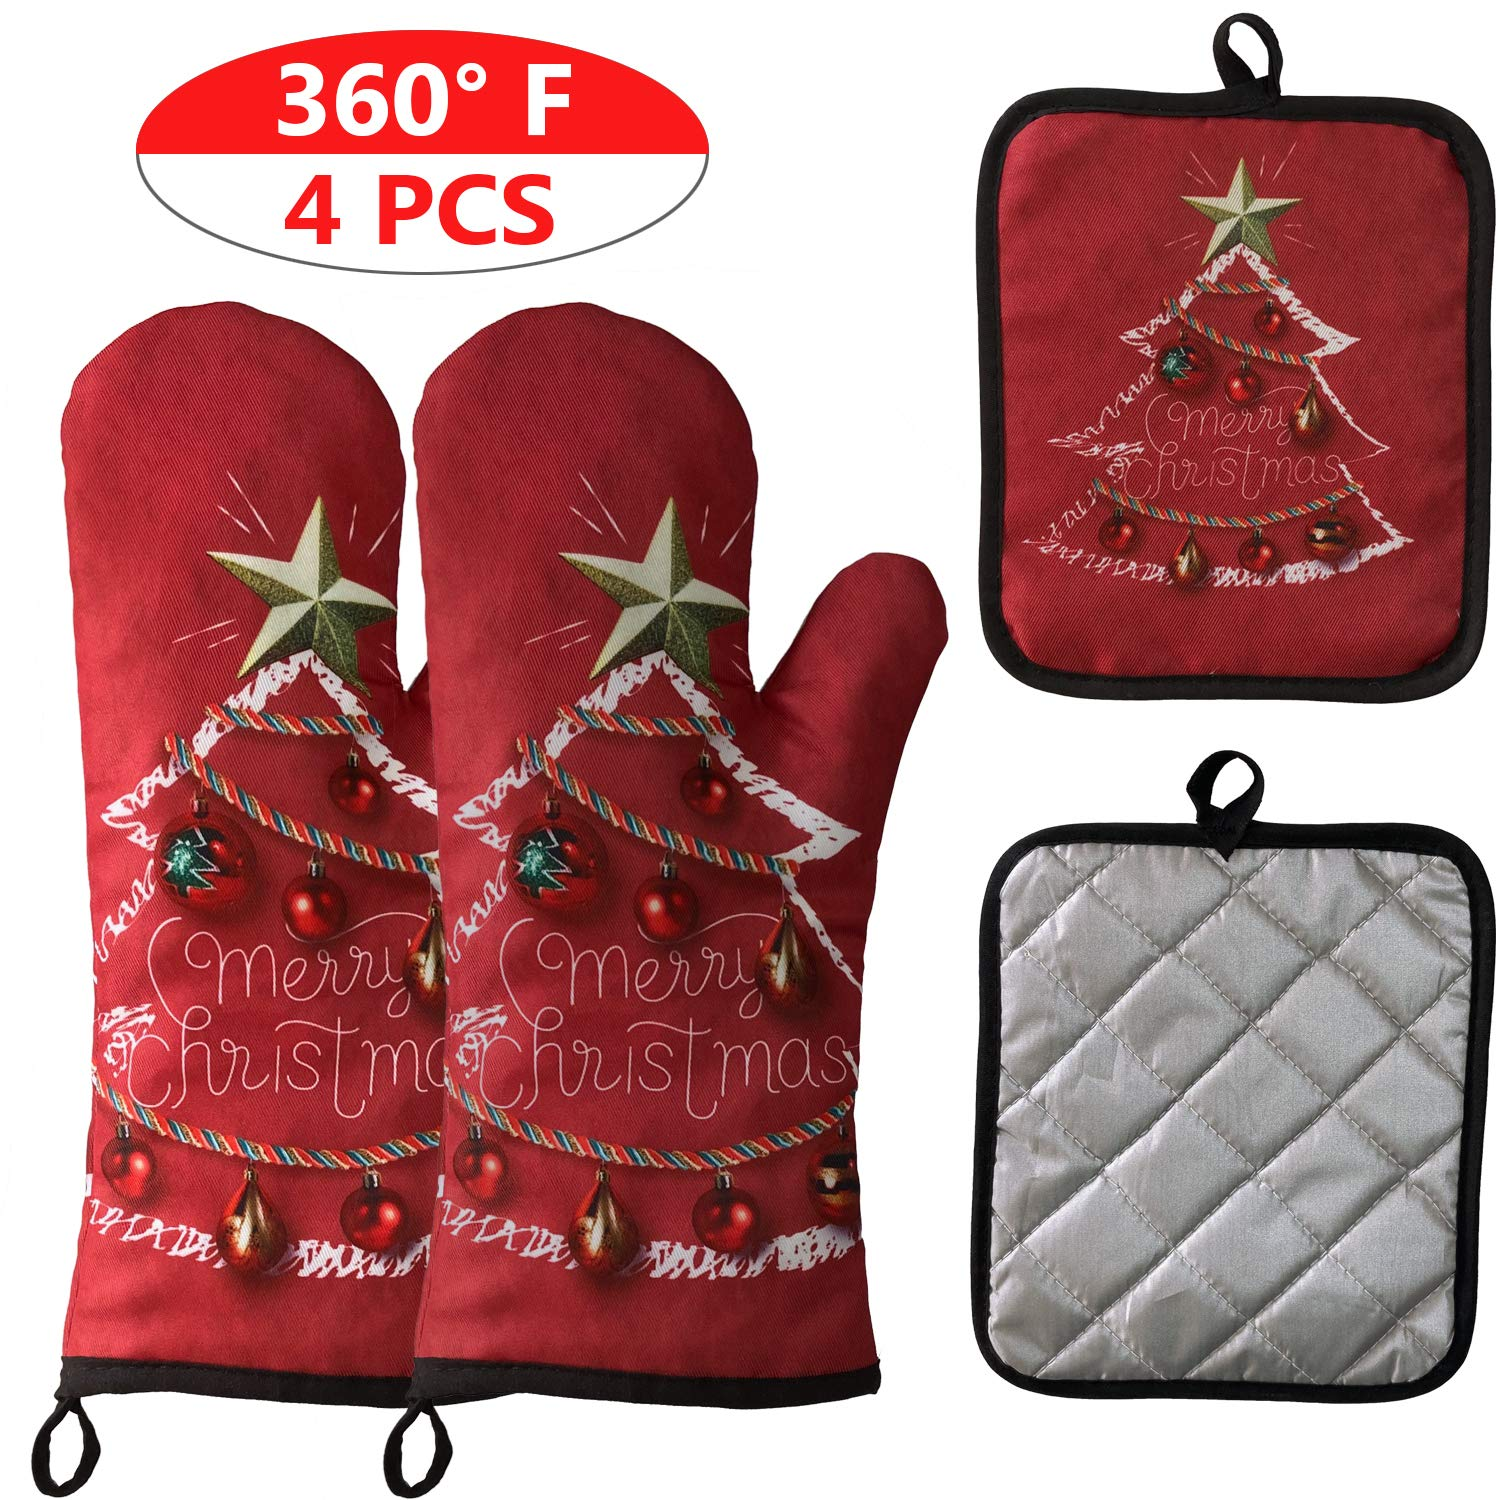 2 Oven Mitts and 2 Pot Holders Set, Soft Cotton Lining with Non-Slip Surface, Heat Resistant Kitchen Microwave Gloves for Baking Cooking Grilling BBQ (Christmas Red)